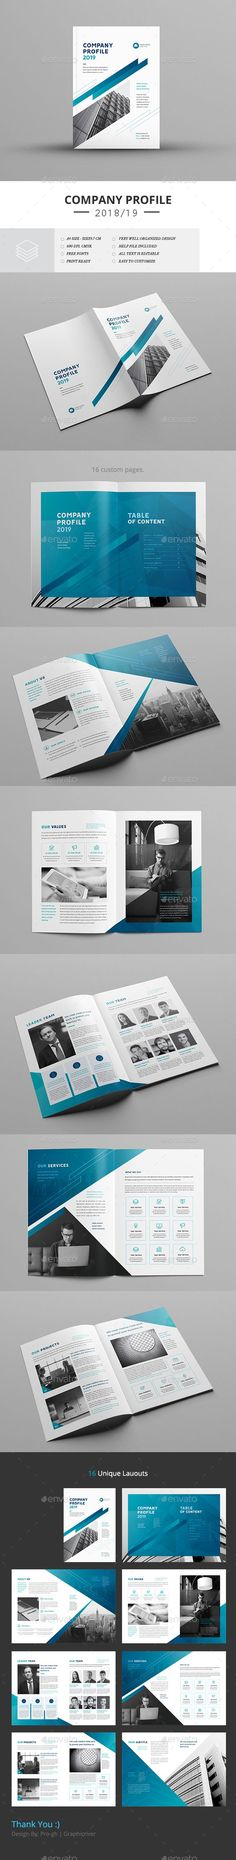 Company Profile Company Profile Template, Company Profile Design, Flyer And Poster Design, Poster Design Inspiration, Corporate Profile, Corporate Brochure, Graphic Design Templates, Print Templates, Creative Brochure